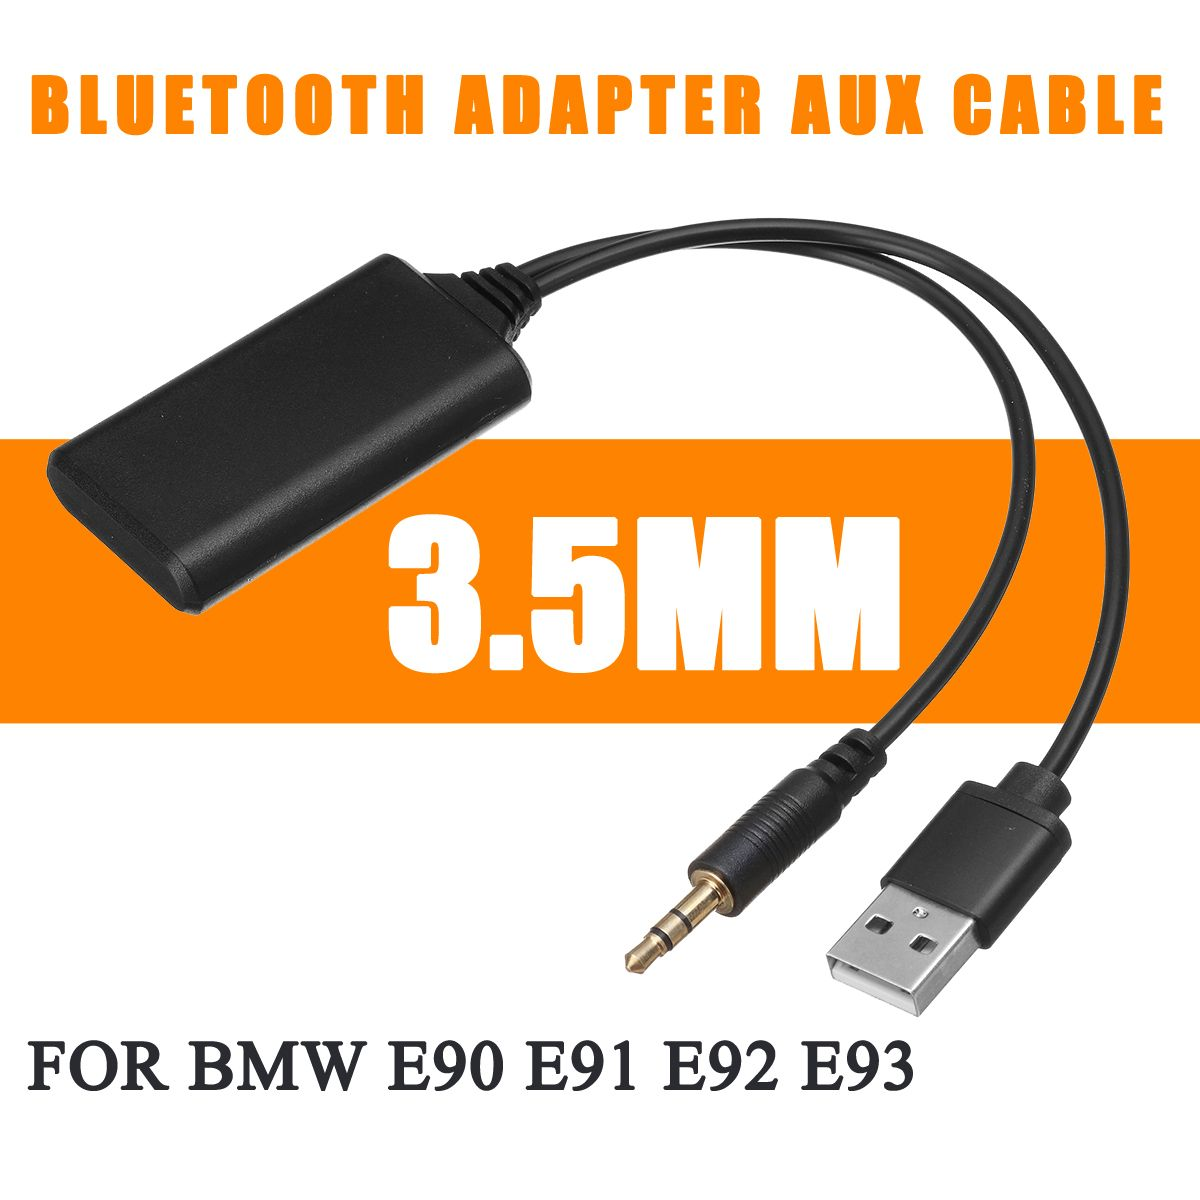 <font><b>12V</b></font> <font><b>bluetooth</b></font> Module <font><b>Adapter</b></font> Wireless Radio Stereo <font><b>AUX</b></font>-IN <font><b>Aux</b></font> Cable <font><b>Adapter</b></font> USB 3.5MM Jack Plug For BMW E90 E91 E92 E93 image